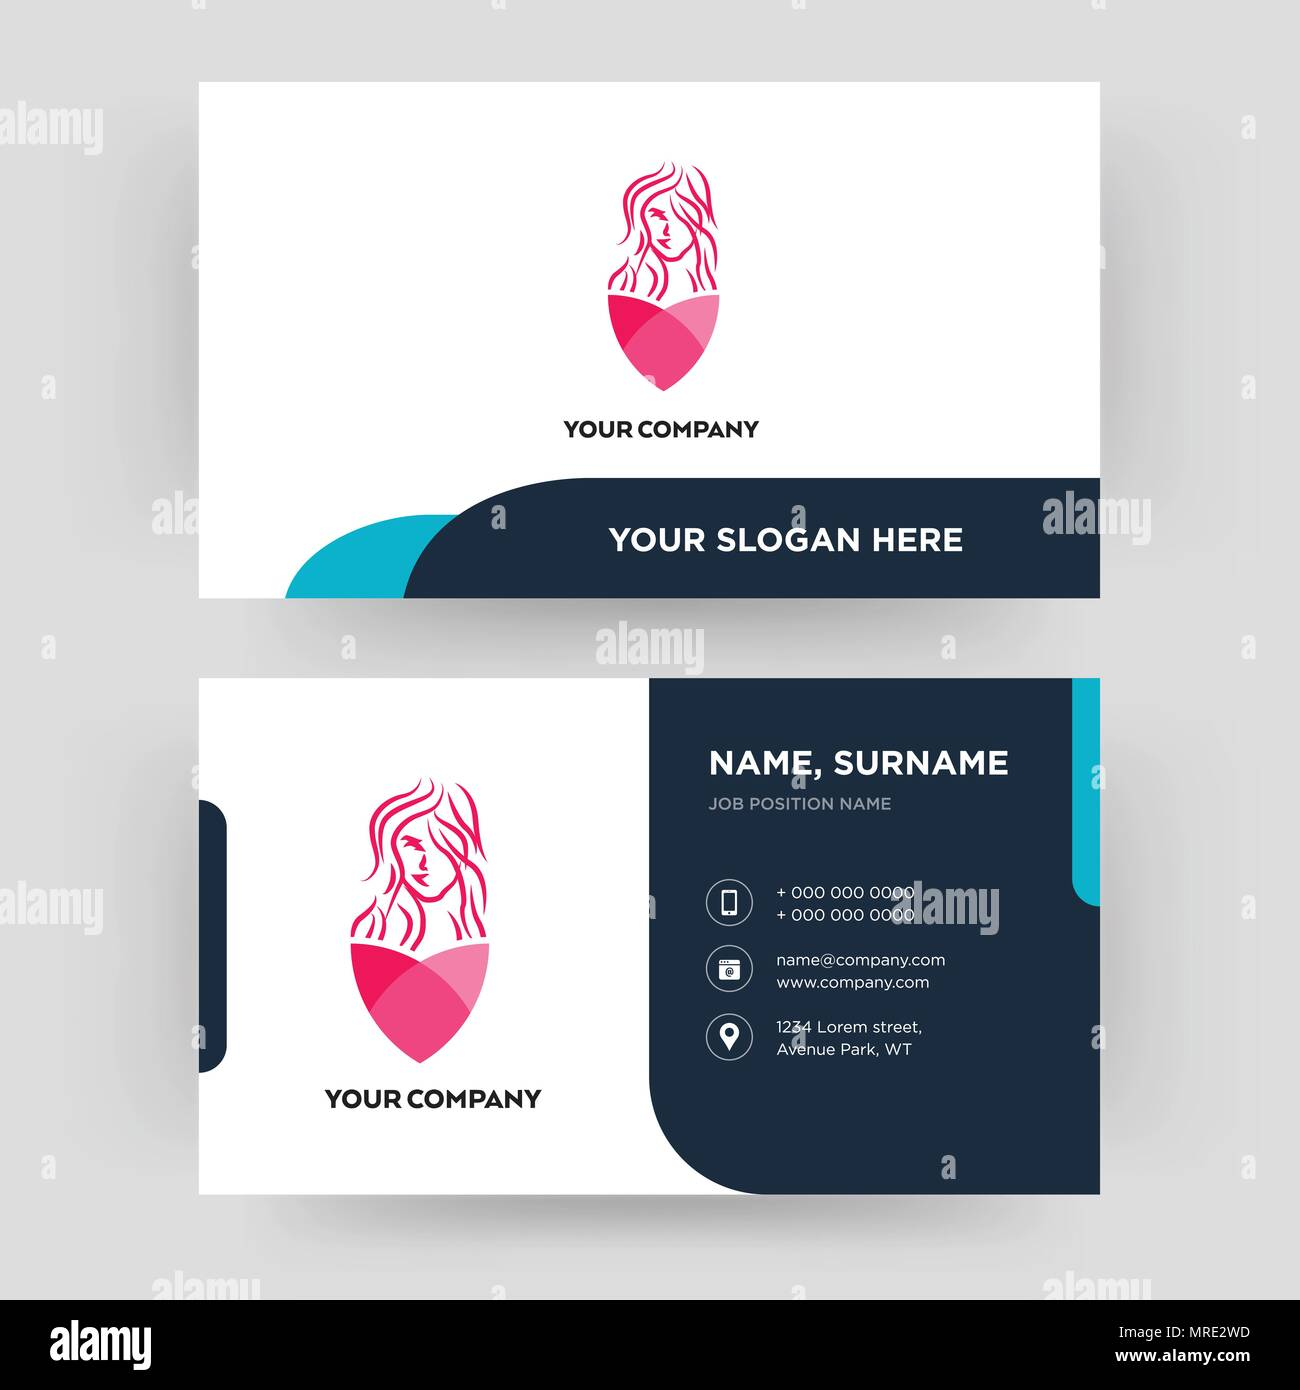 Salon Business Card Design Template Visiting For Your Company Modern Creative And Clean Identity Card Vector Stock Vector Image Art Alamy